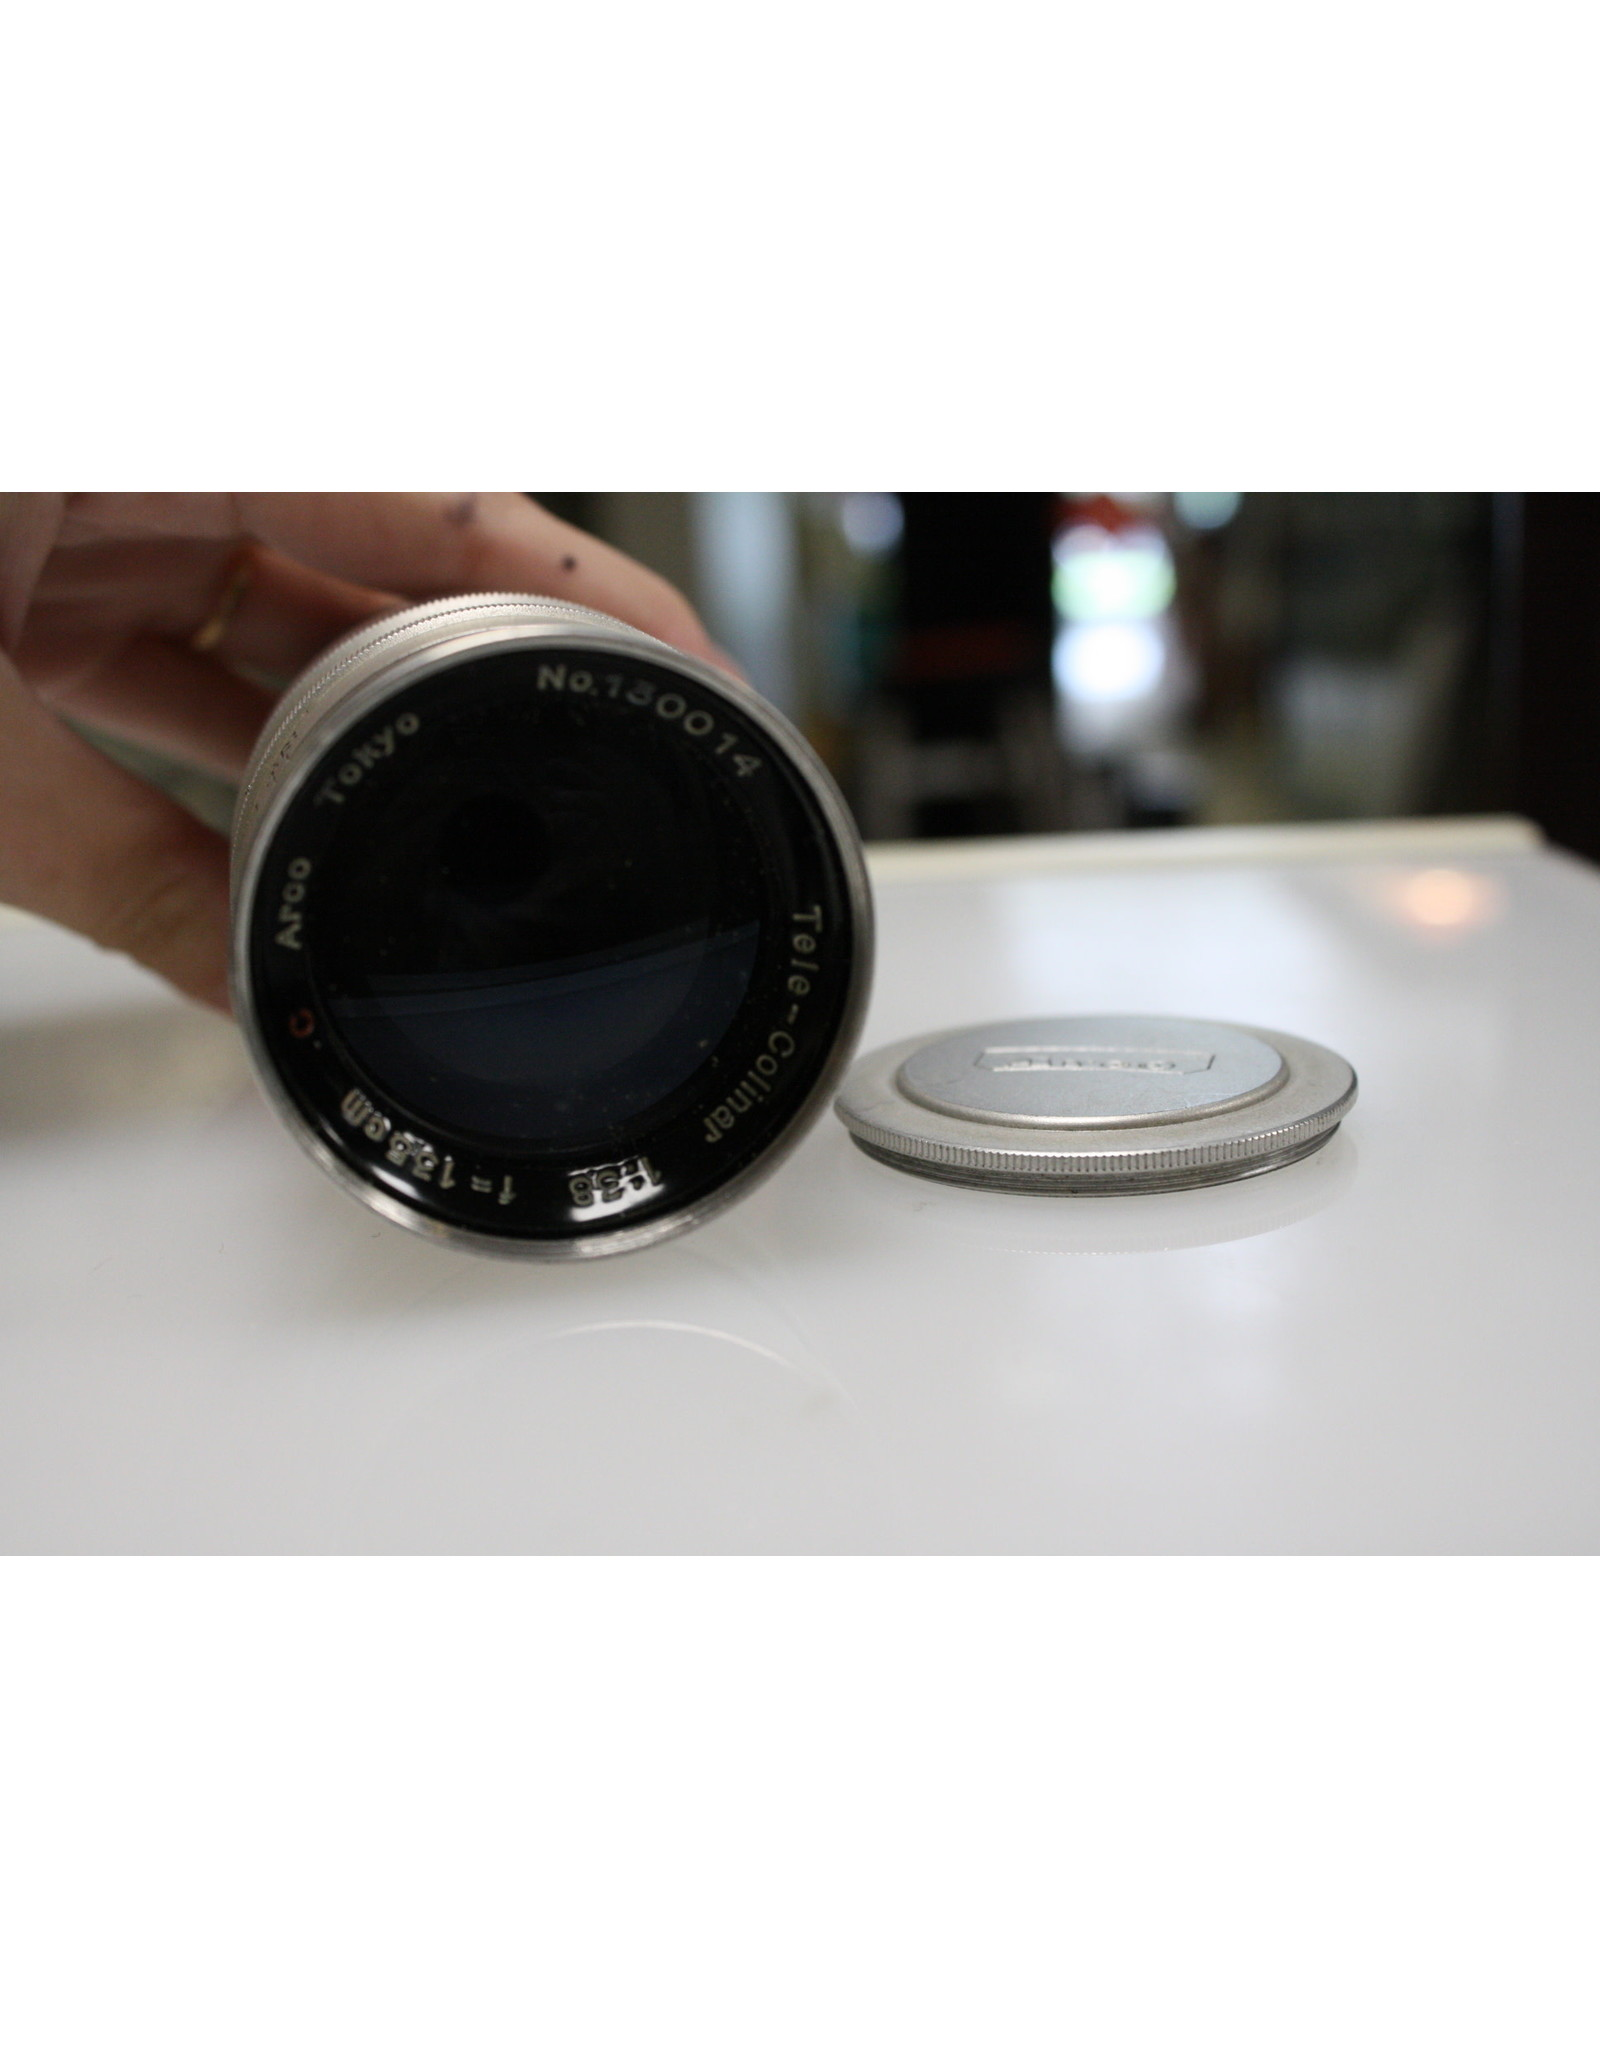 Arco C Tele-Colinar 135mm F3.8 for Leica M39 Mount with case